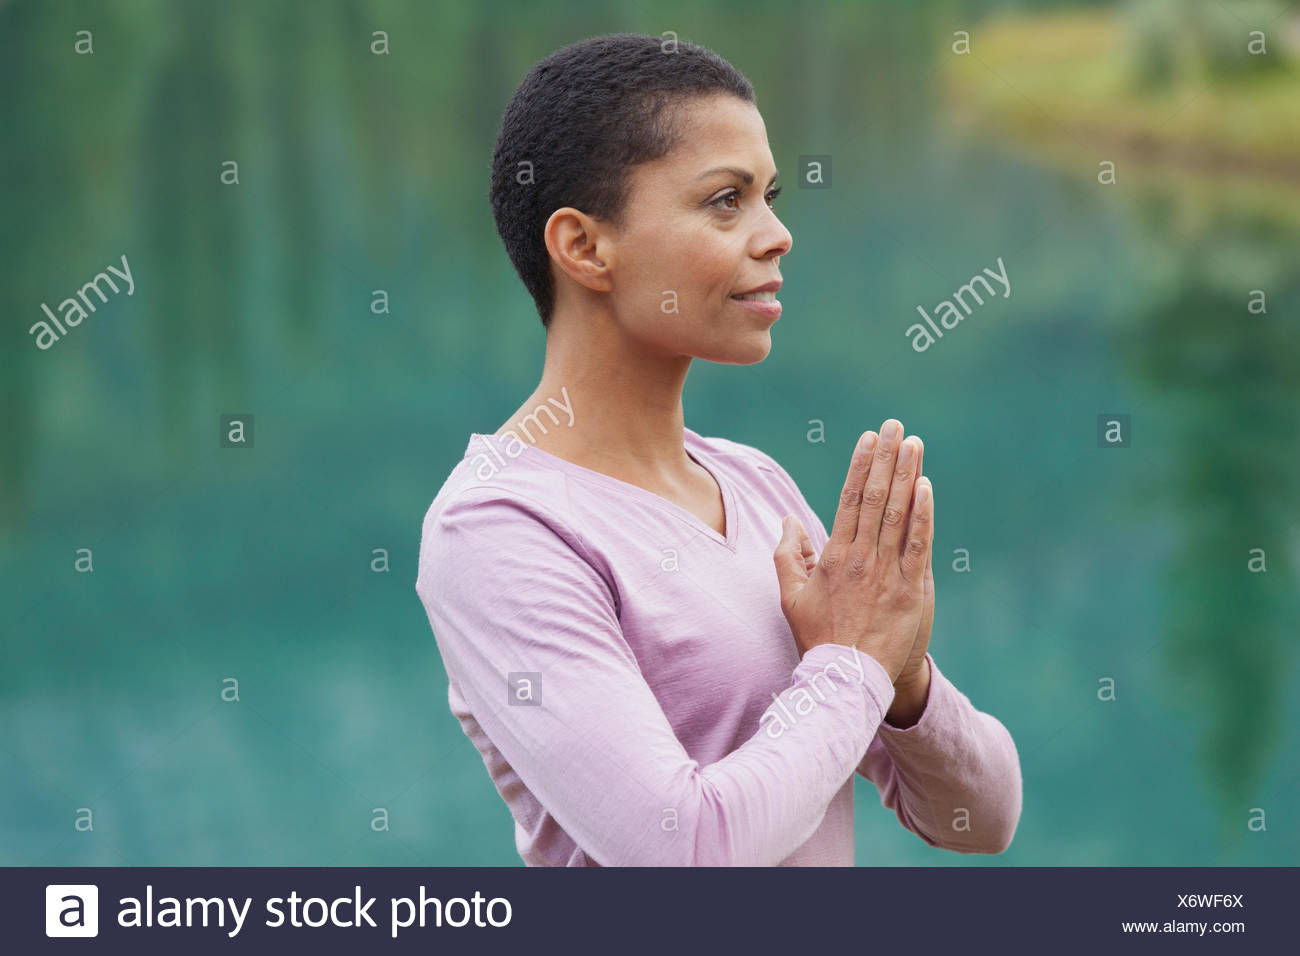 portrait of african american woman in yoga pose outdoors - Stock Image